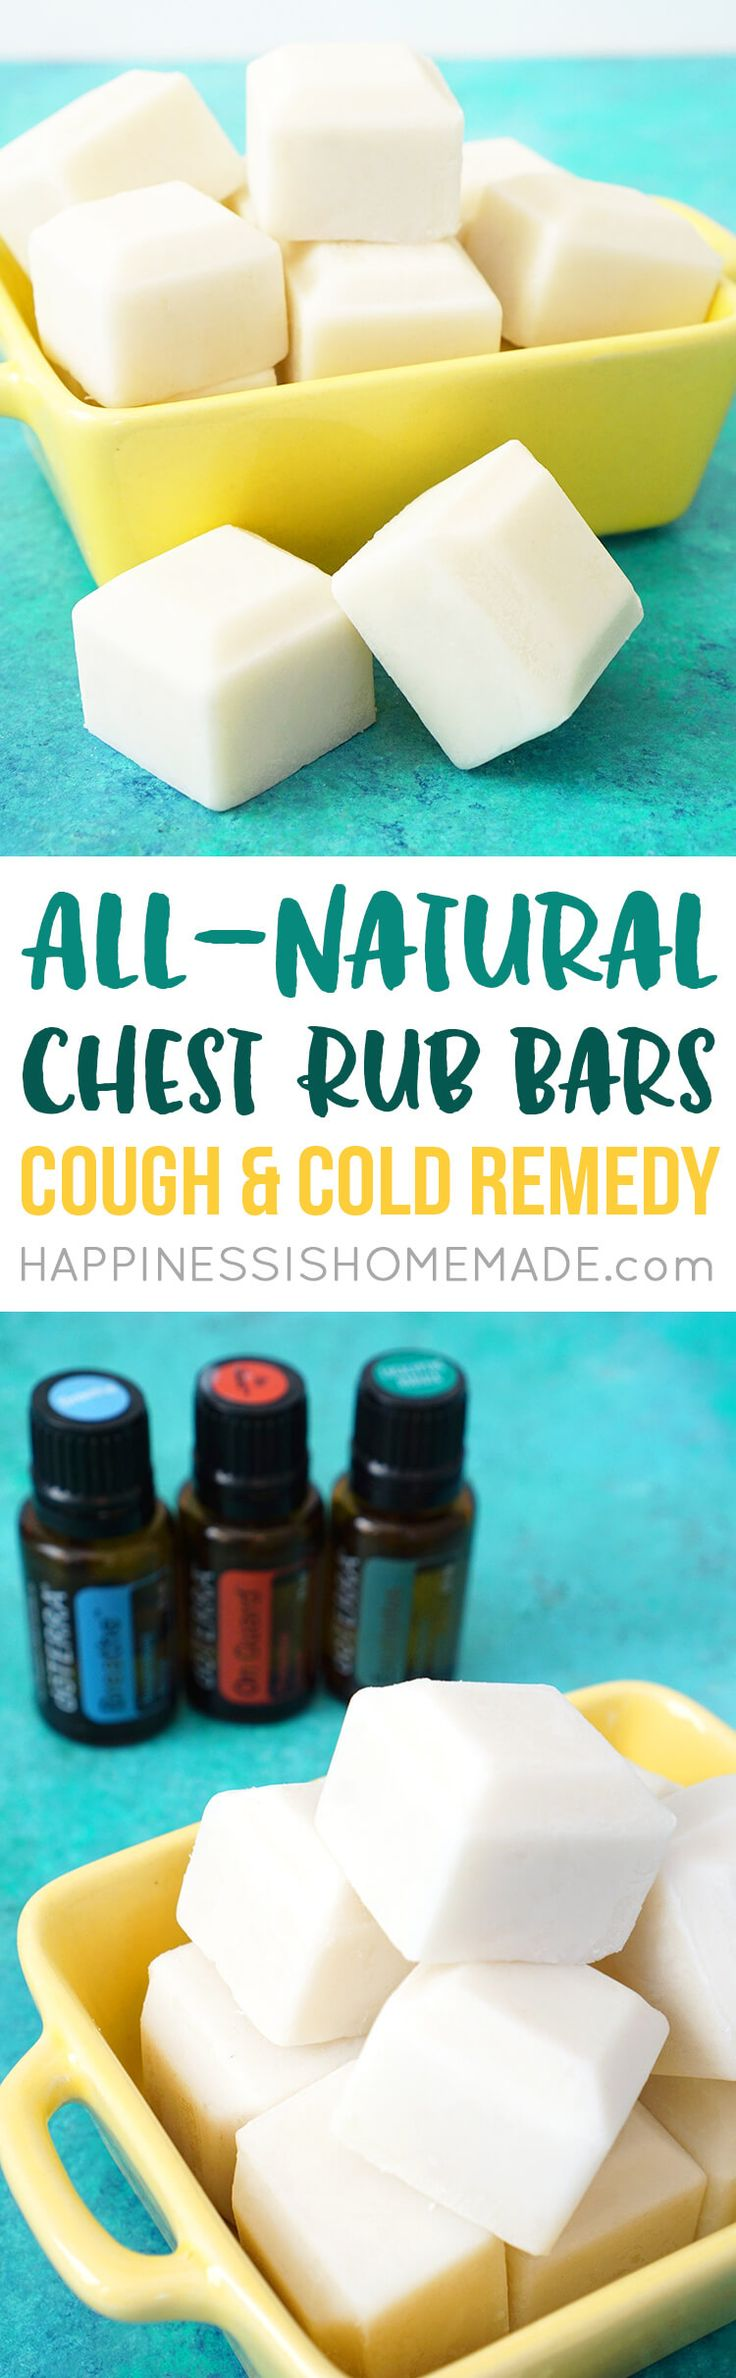 All-Natural Chest Rub Bars: Cough & Cold Remedy. These DIY chest rub bars are a healthy homemade cold remedy for coughing and congestion. Made with all-natural and non-toxic ingredients including shea butter, coconut oil, beeswax, and essential oils, these chest rub bars will help you breathe easier and help prevent your cold from coming back!